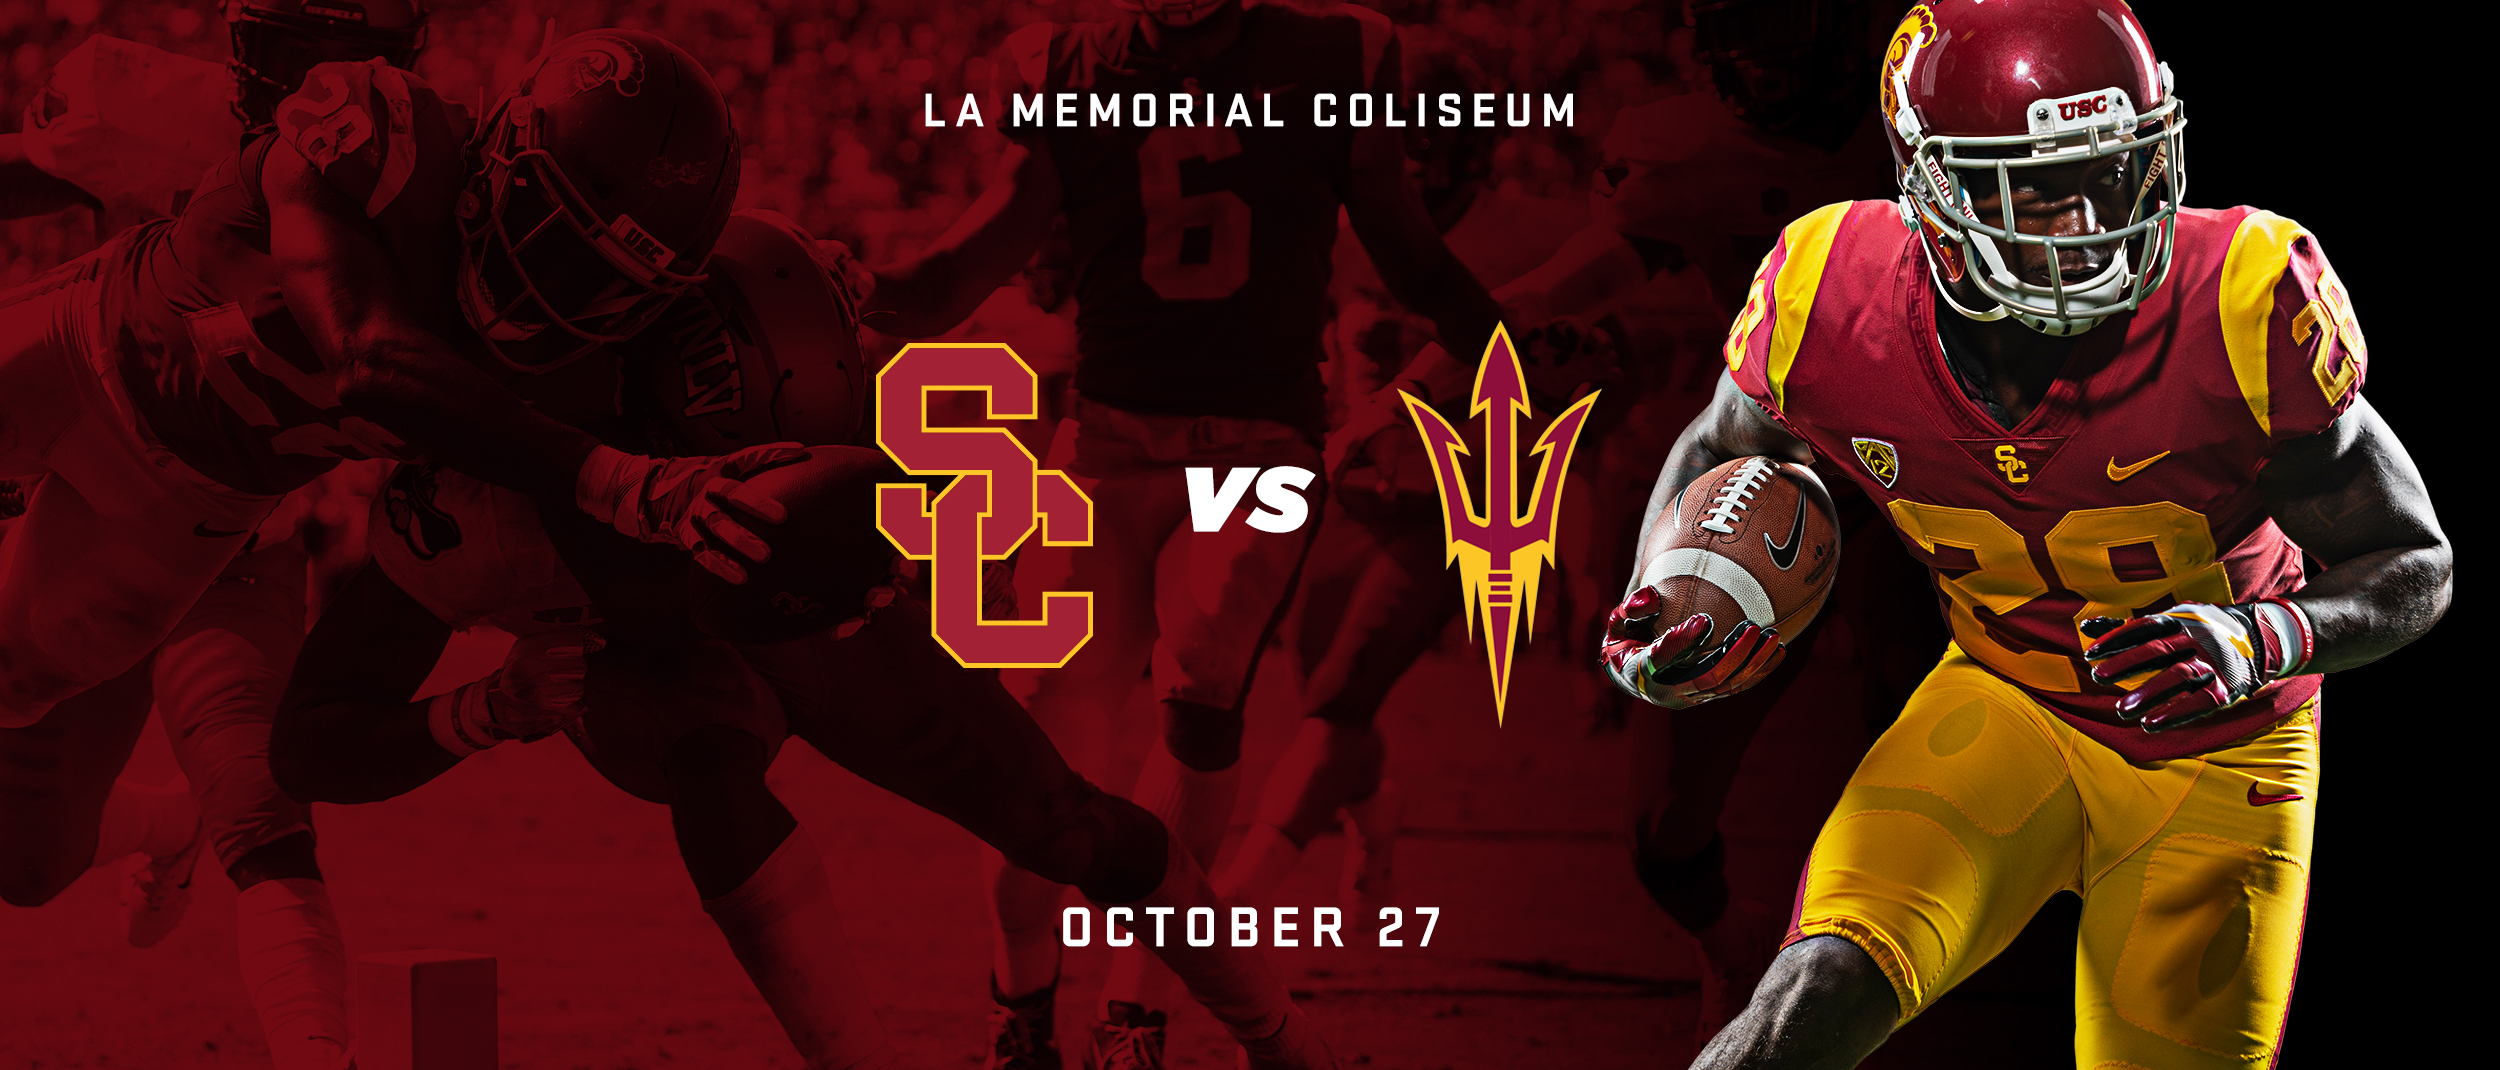 USC VS ARIZONA STATE